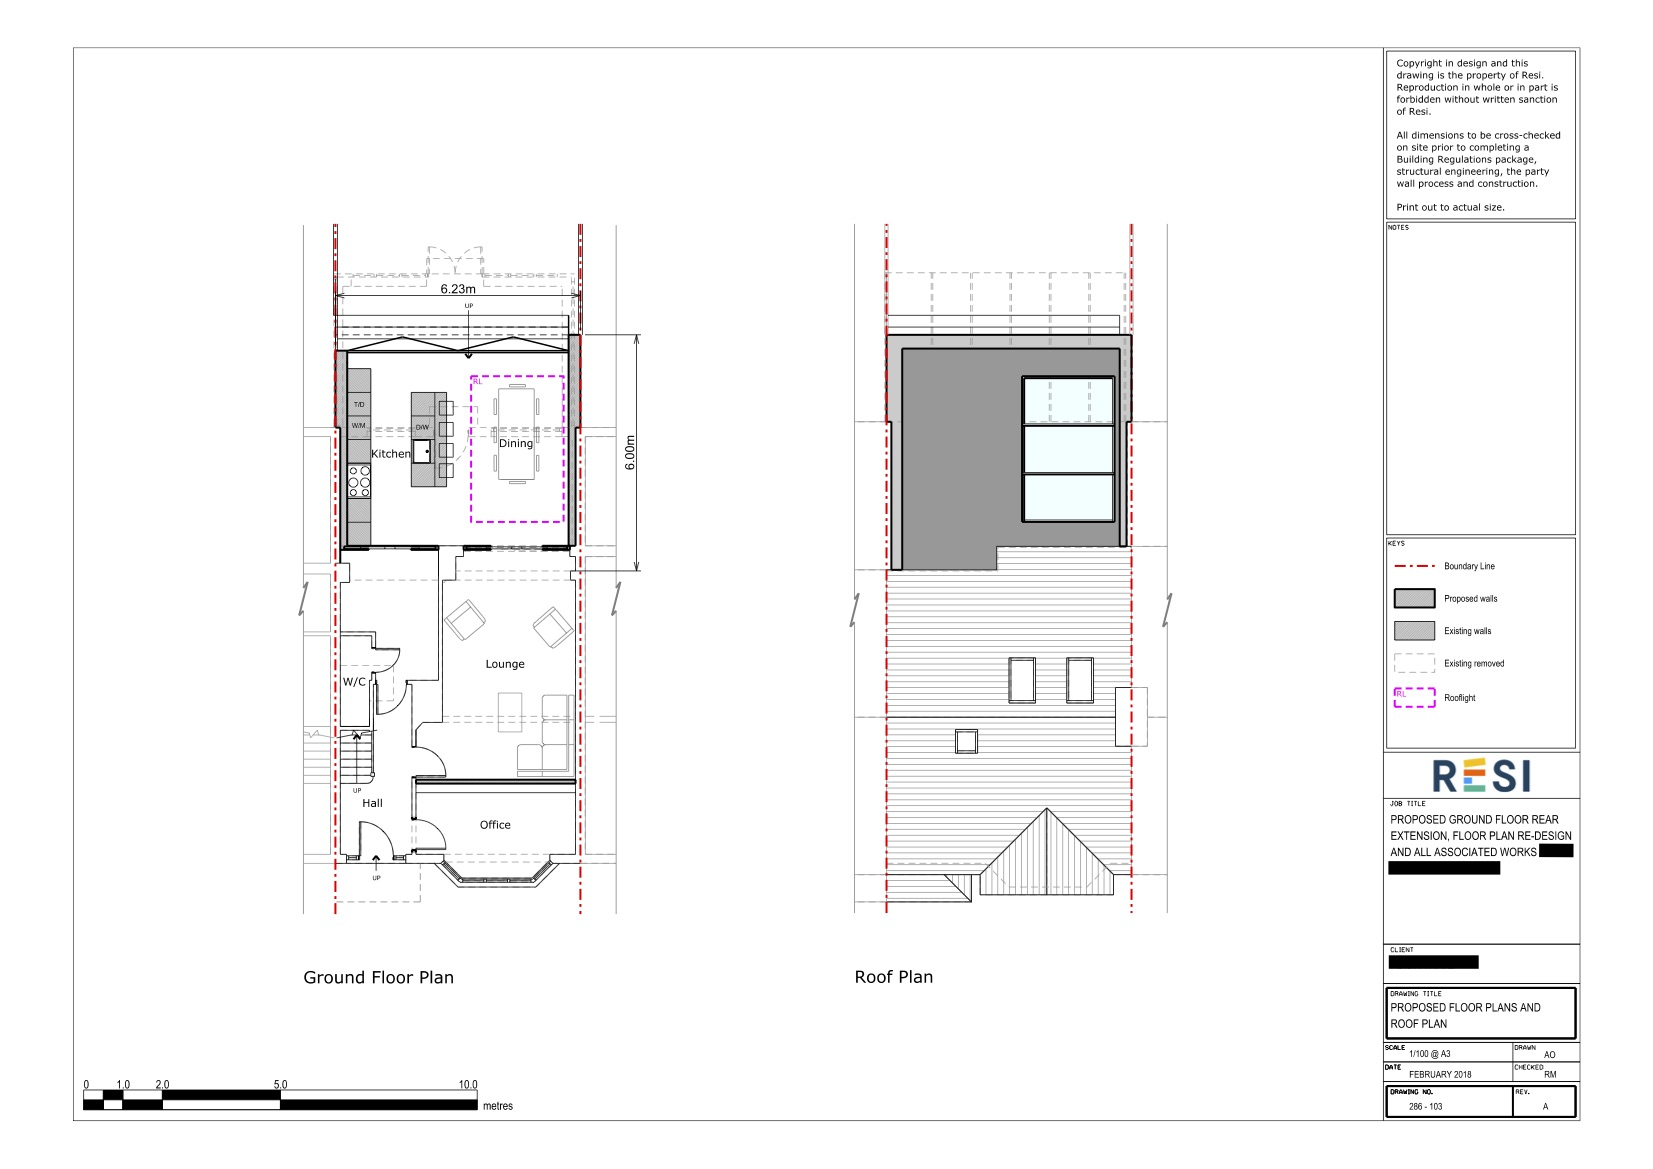 Architectural drawings    ground floor plans